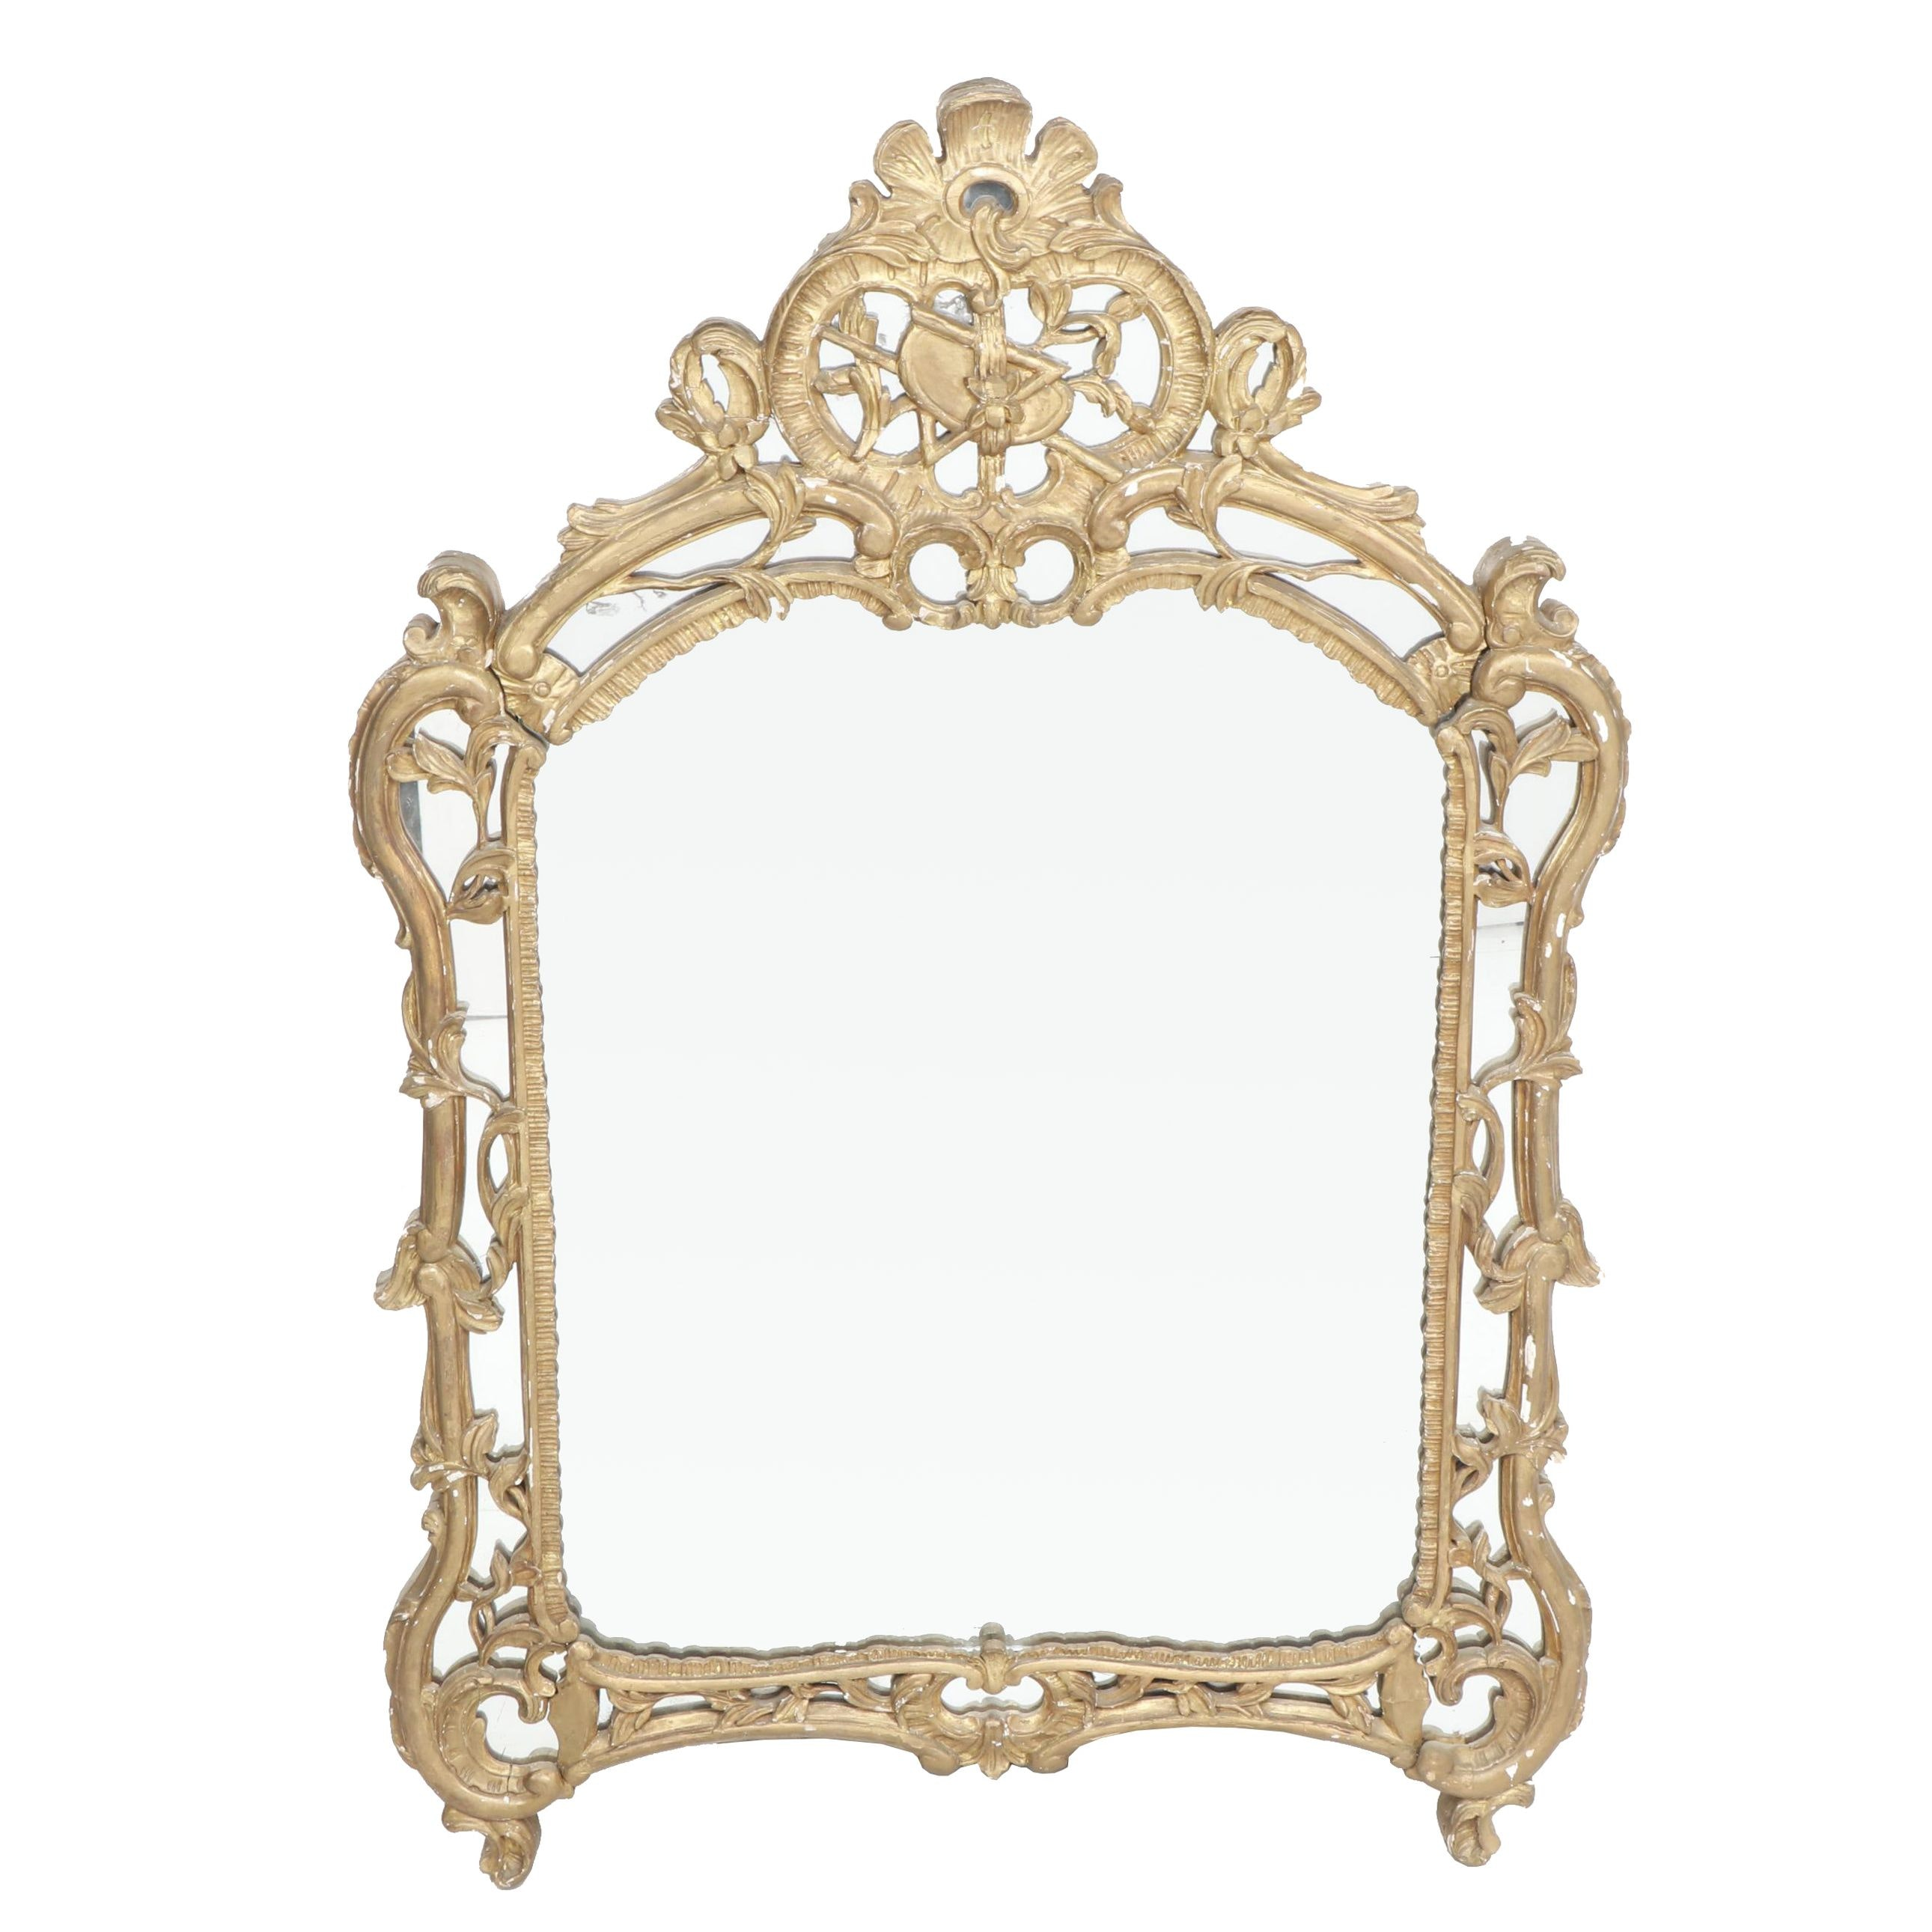 Baroque Style Gold-Tone Wall Hanging Mirror